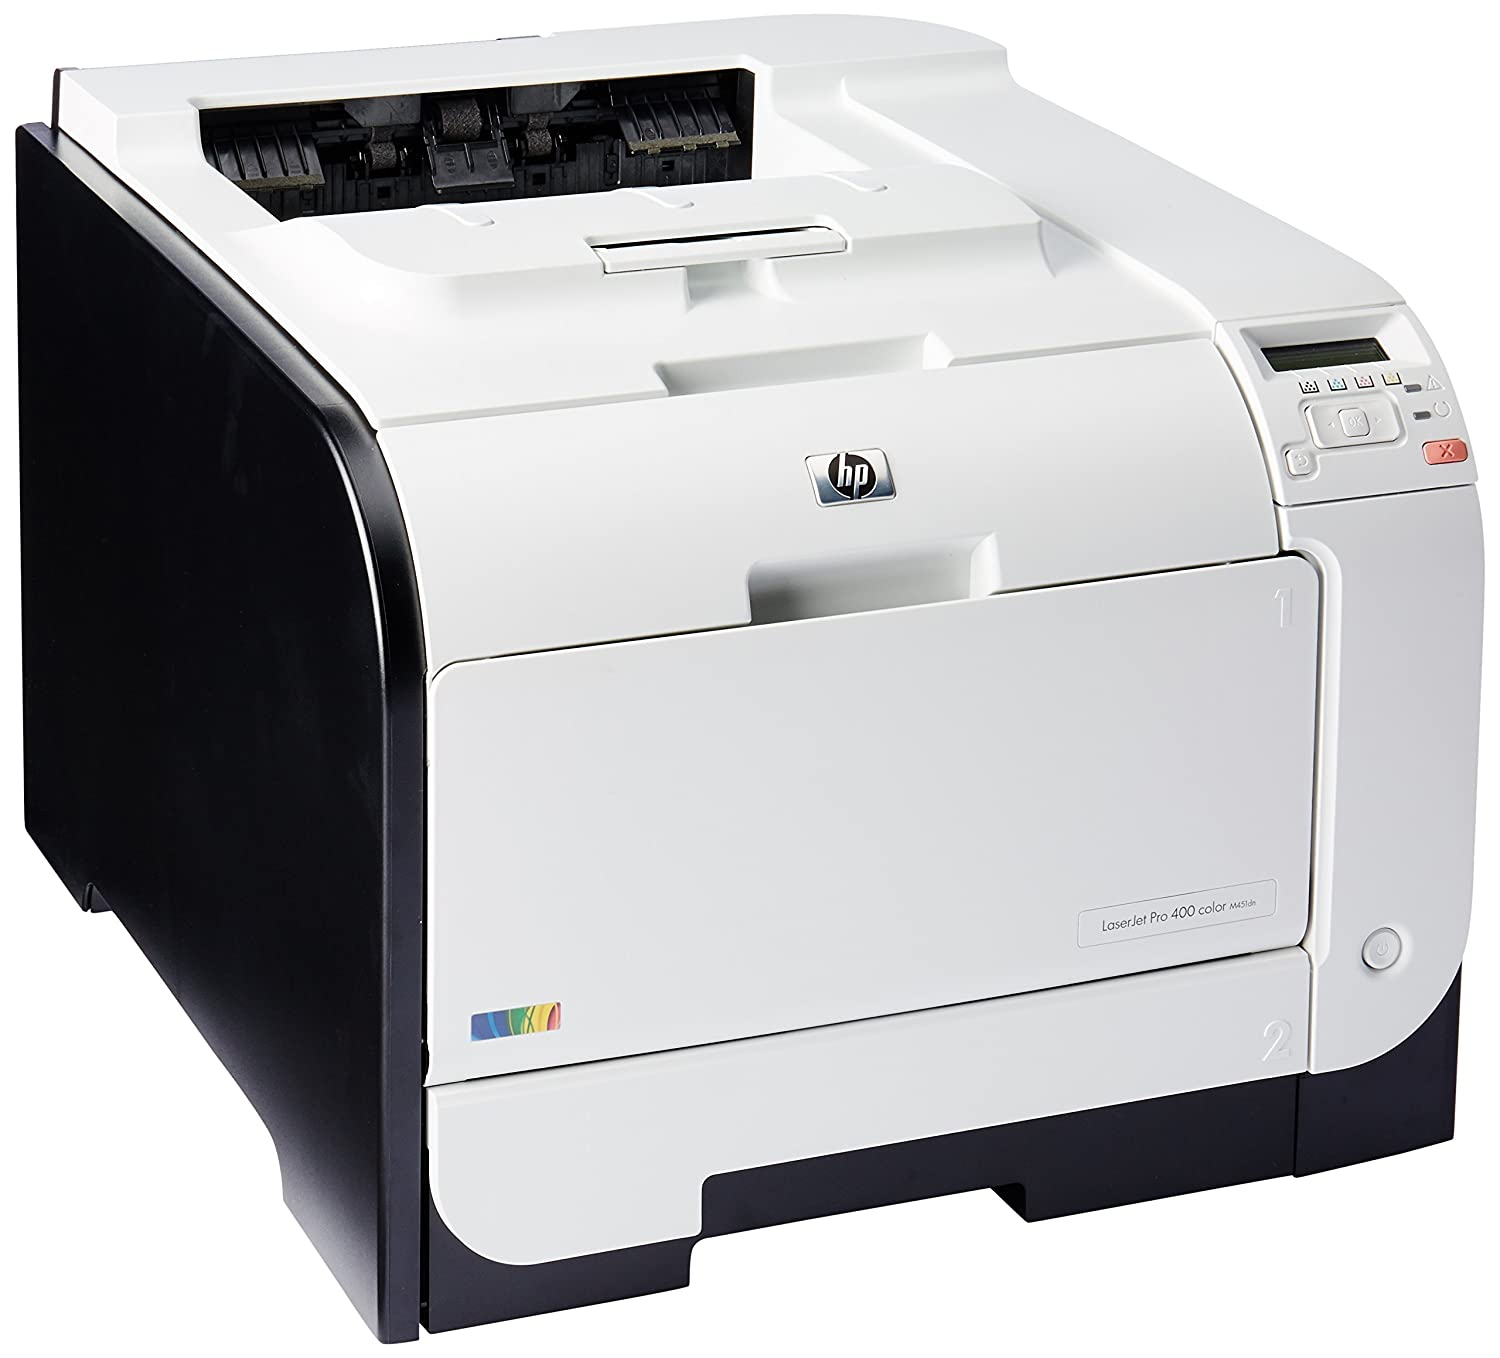 depot fax office brother color in printer officemax one all by wireless pin scanner printers mfc inkjet copier